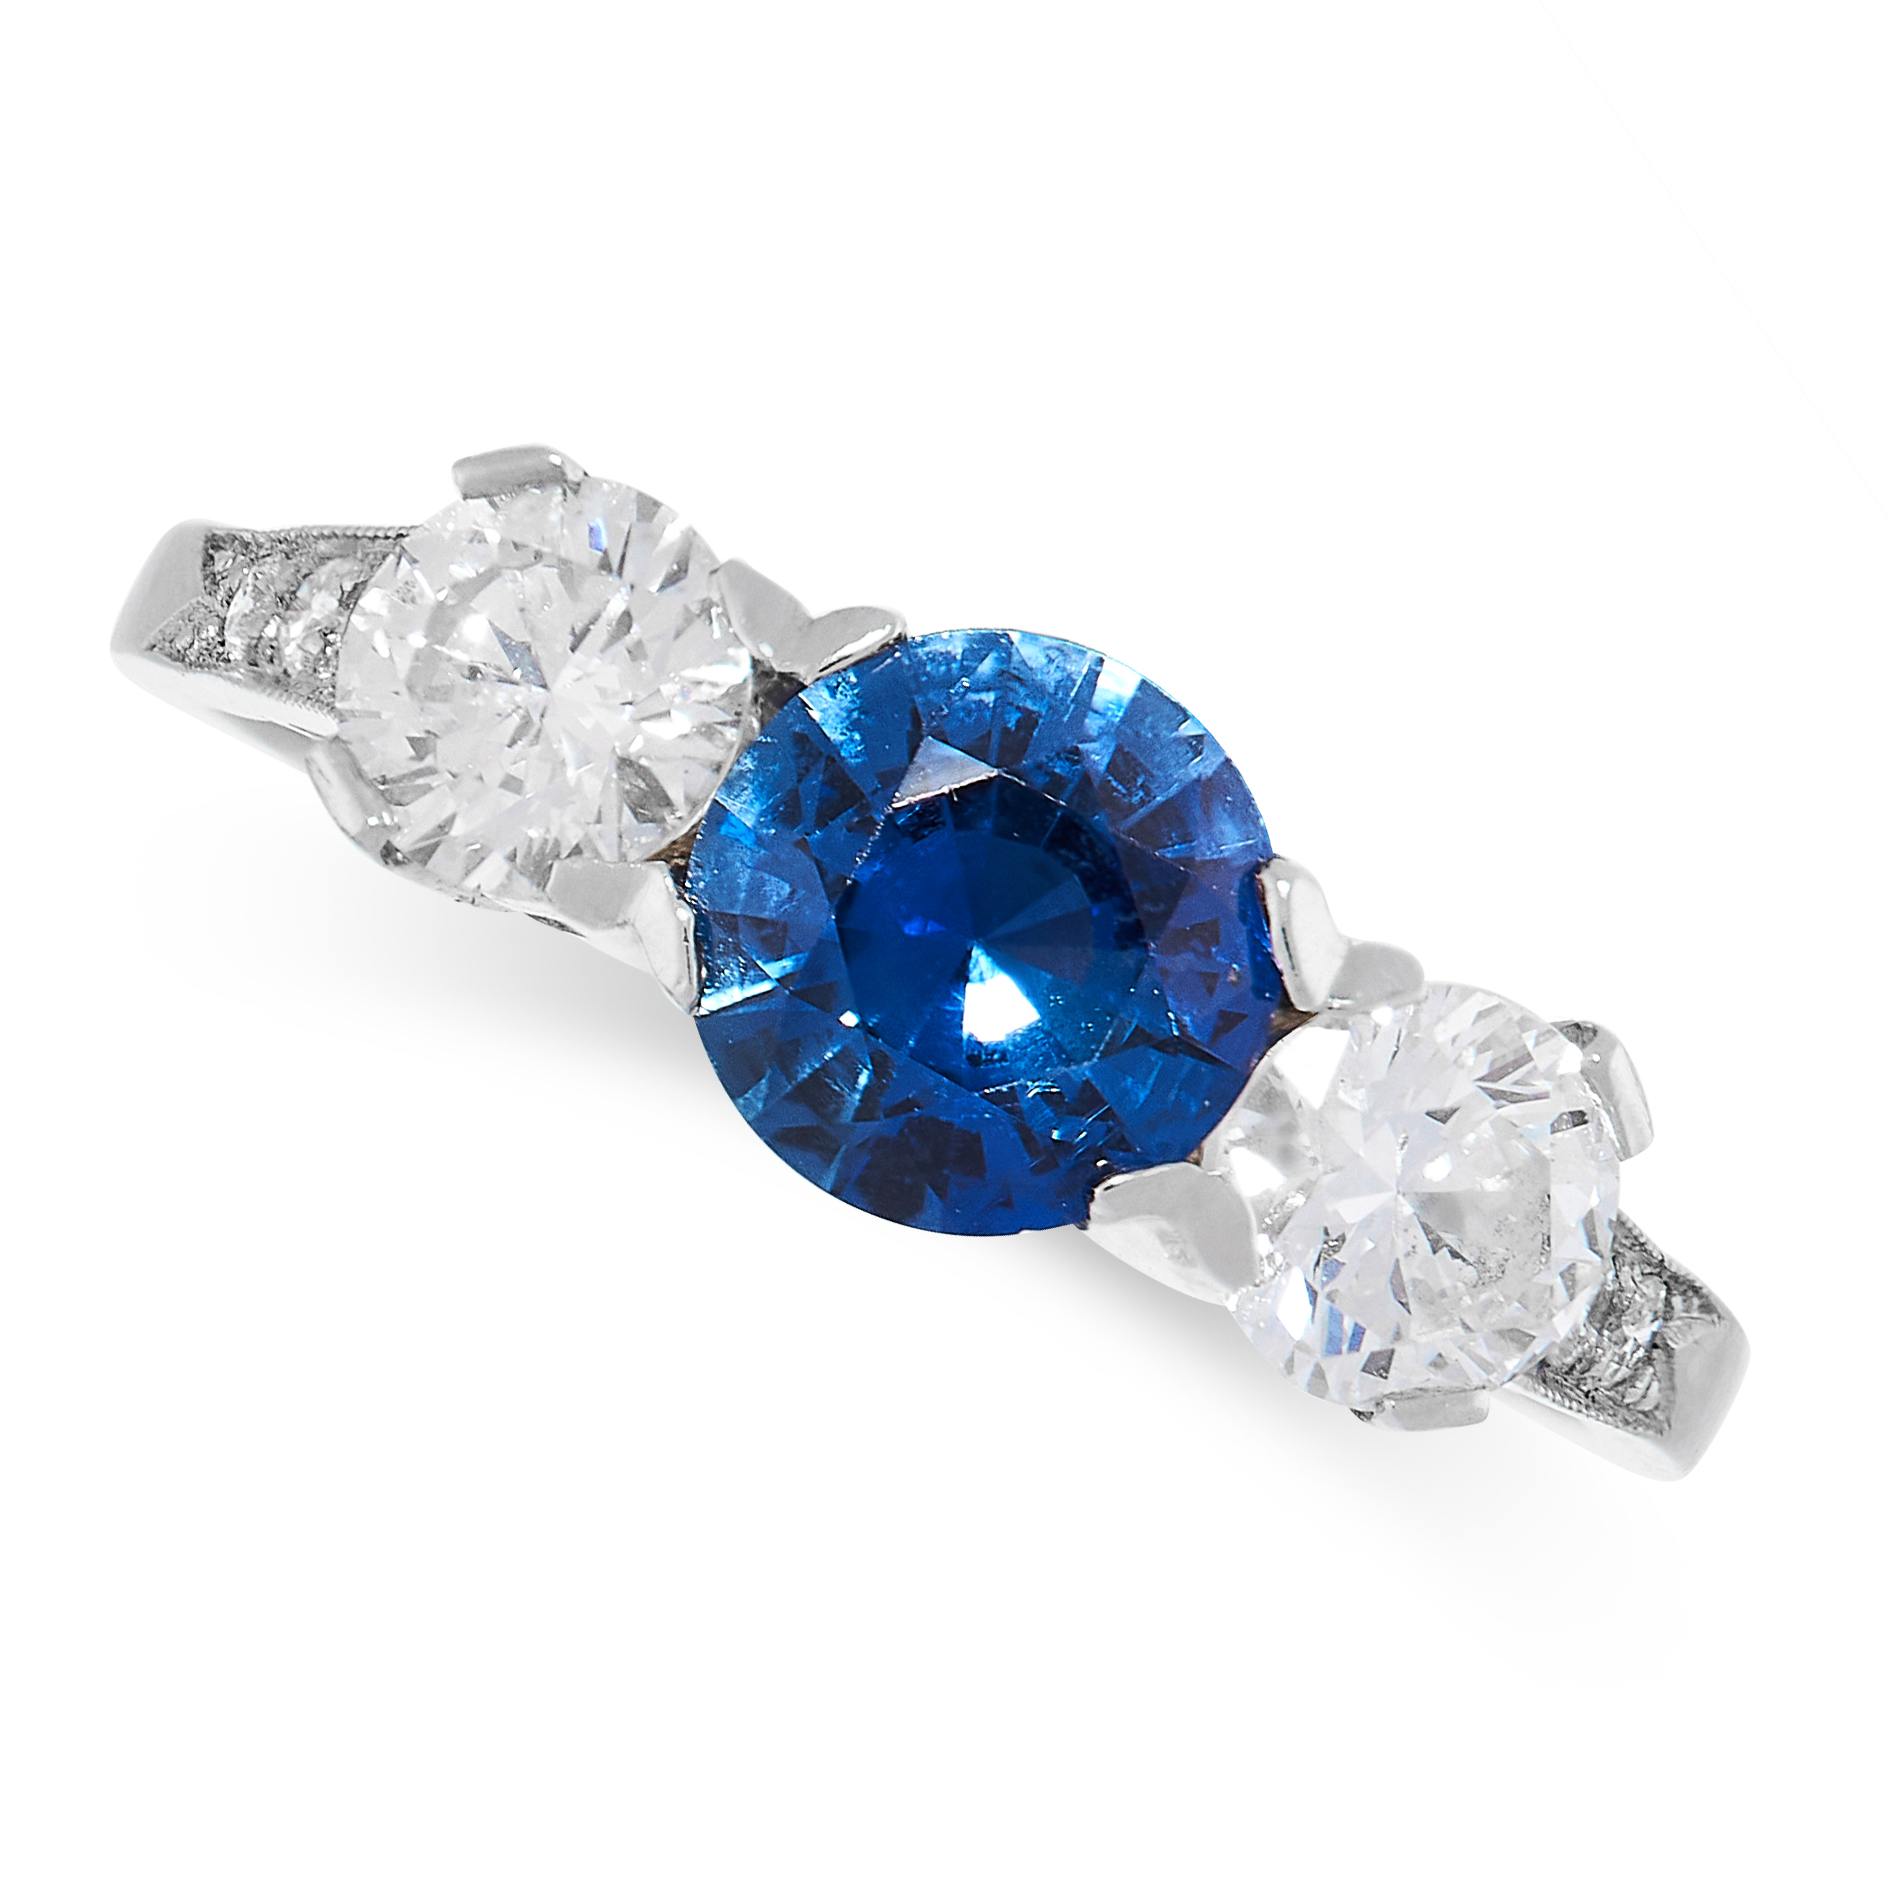 SAPPHIRE AND DIAMOND THREE STONE RING comprising of a round cut sapphire of 0.92 carats between